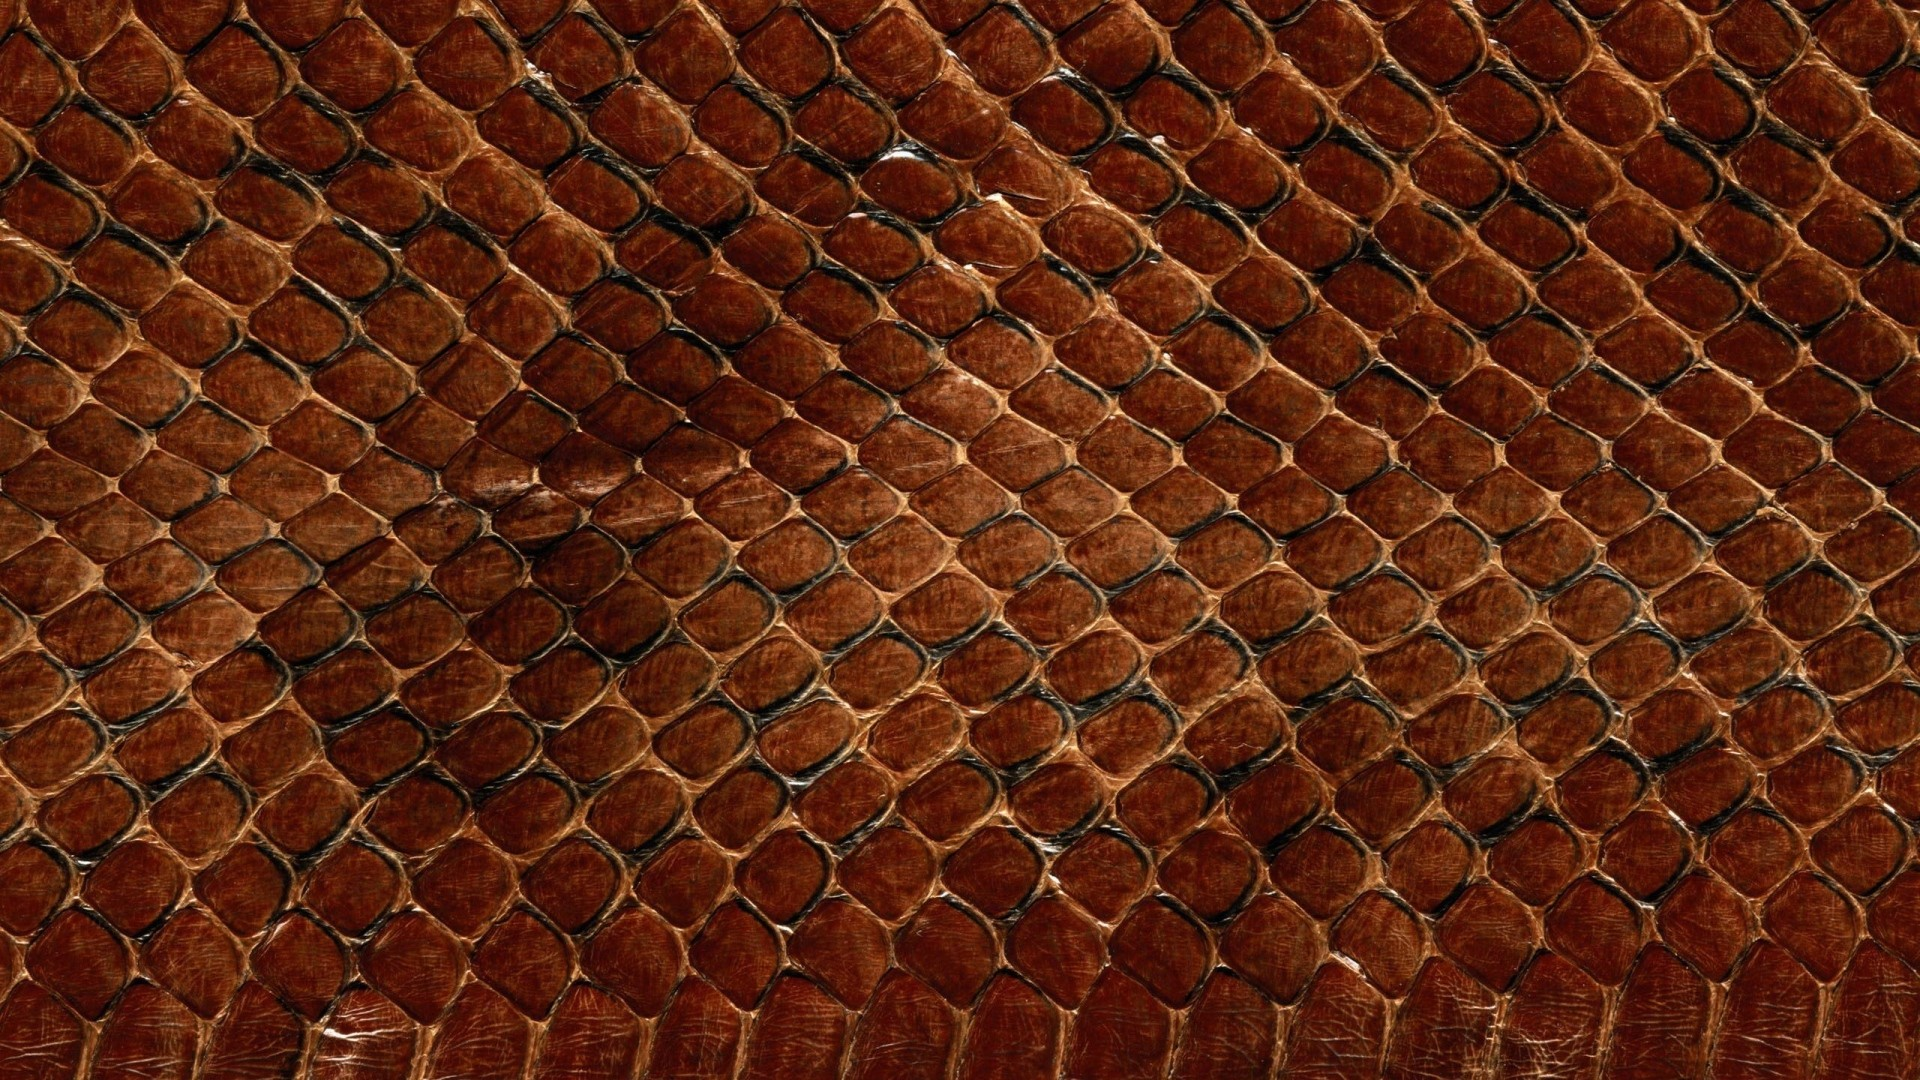 1920x1080 Preview wallpaper texture, leather, snake, scales, background